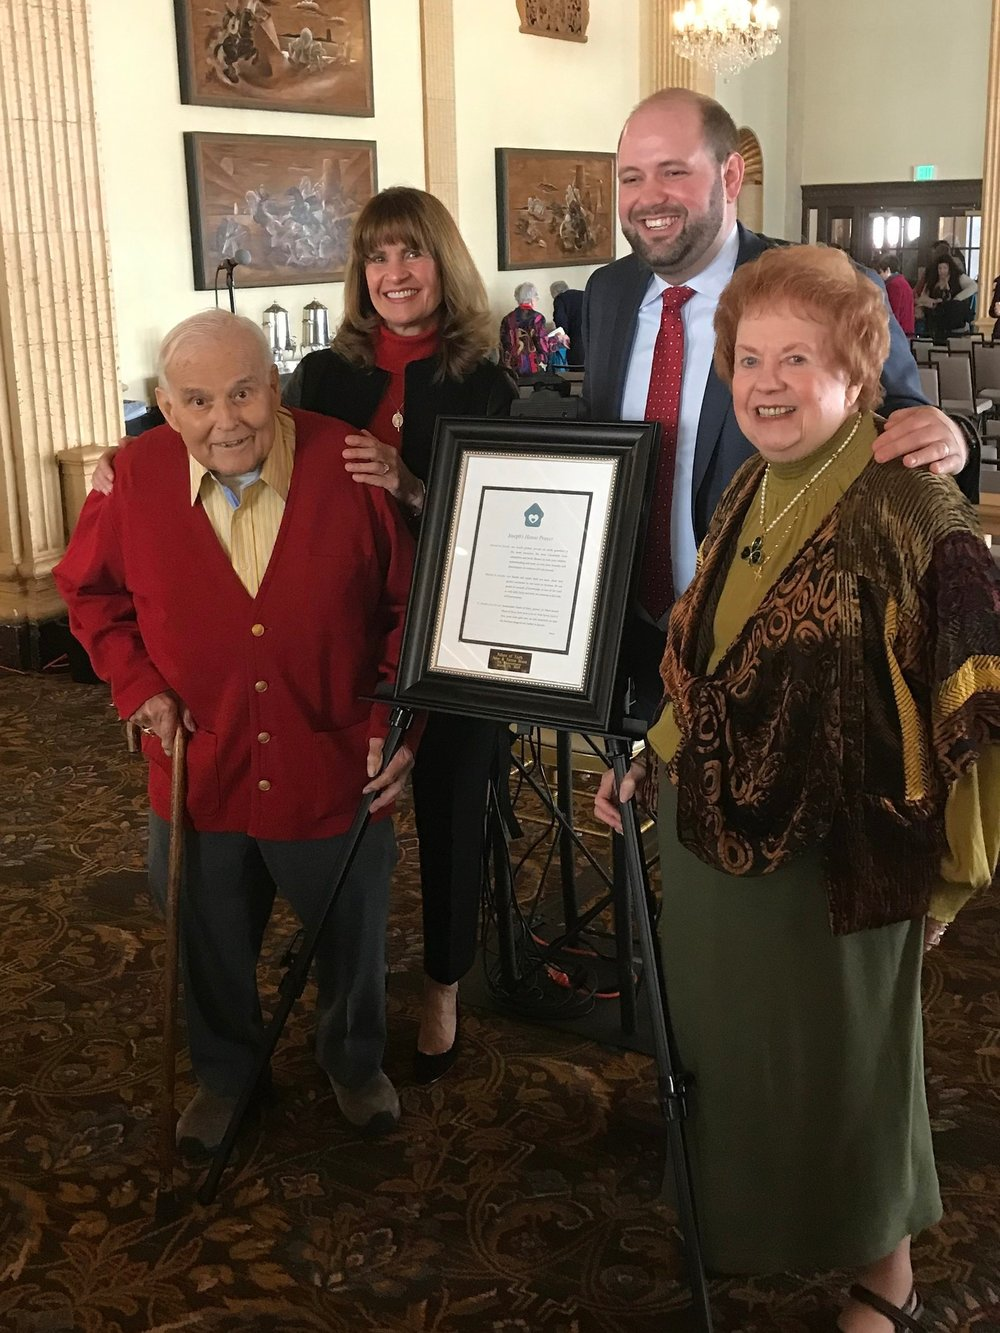 John & Teresa Brusa, receiving the Pillars of Faith Award with Kitty Spinelli and Bronson Kopp of Joseph's House